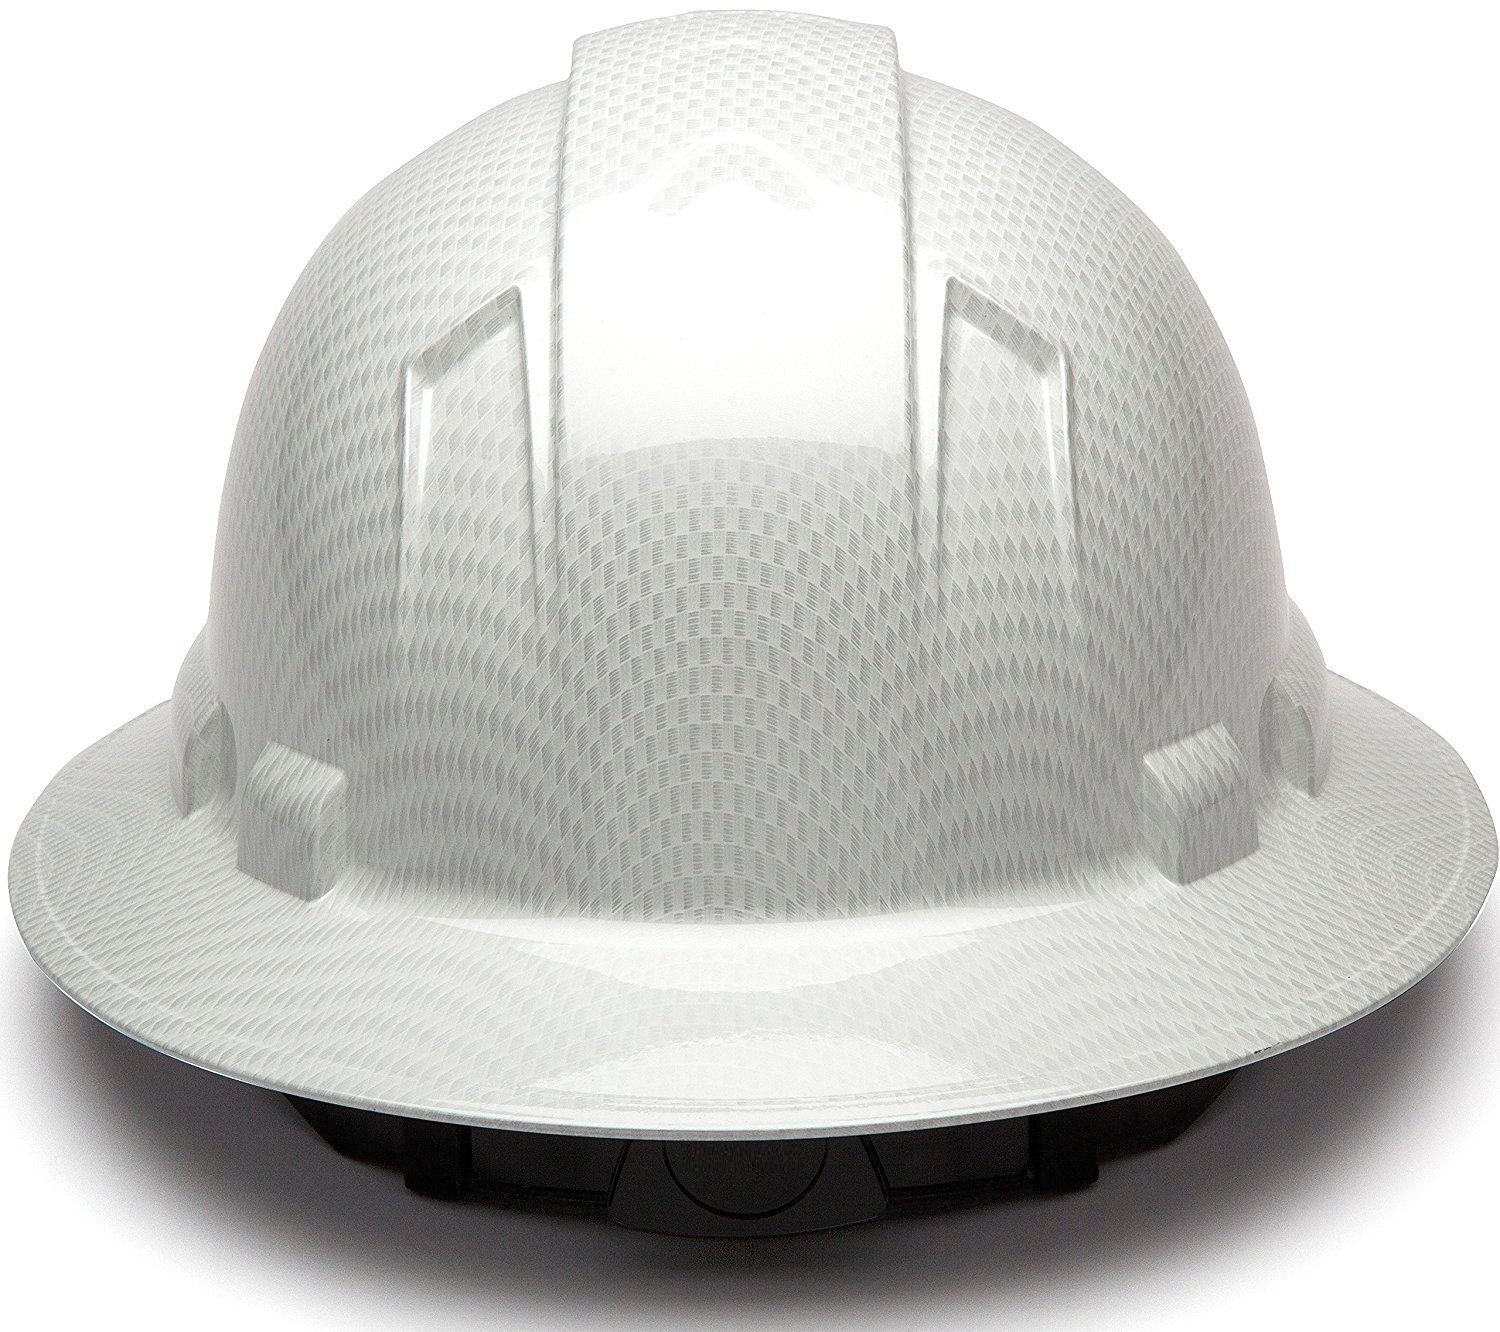 Full Brim Hard Hat, Adjustable Ratchet 4 Pt Suspension, Durable Protection safety helmet, Graphite Pattern Design, White Shiny, by Acerpal by ACERPAL